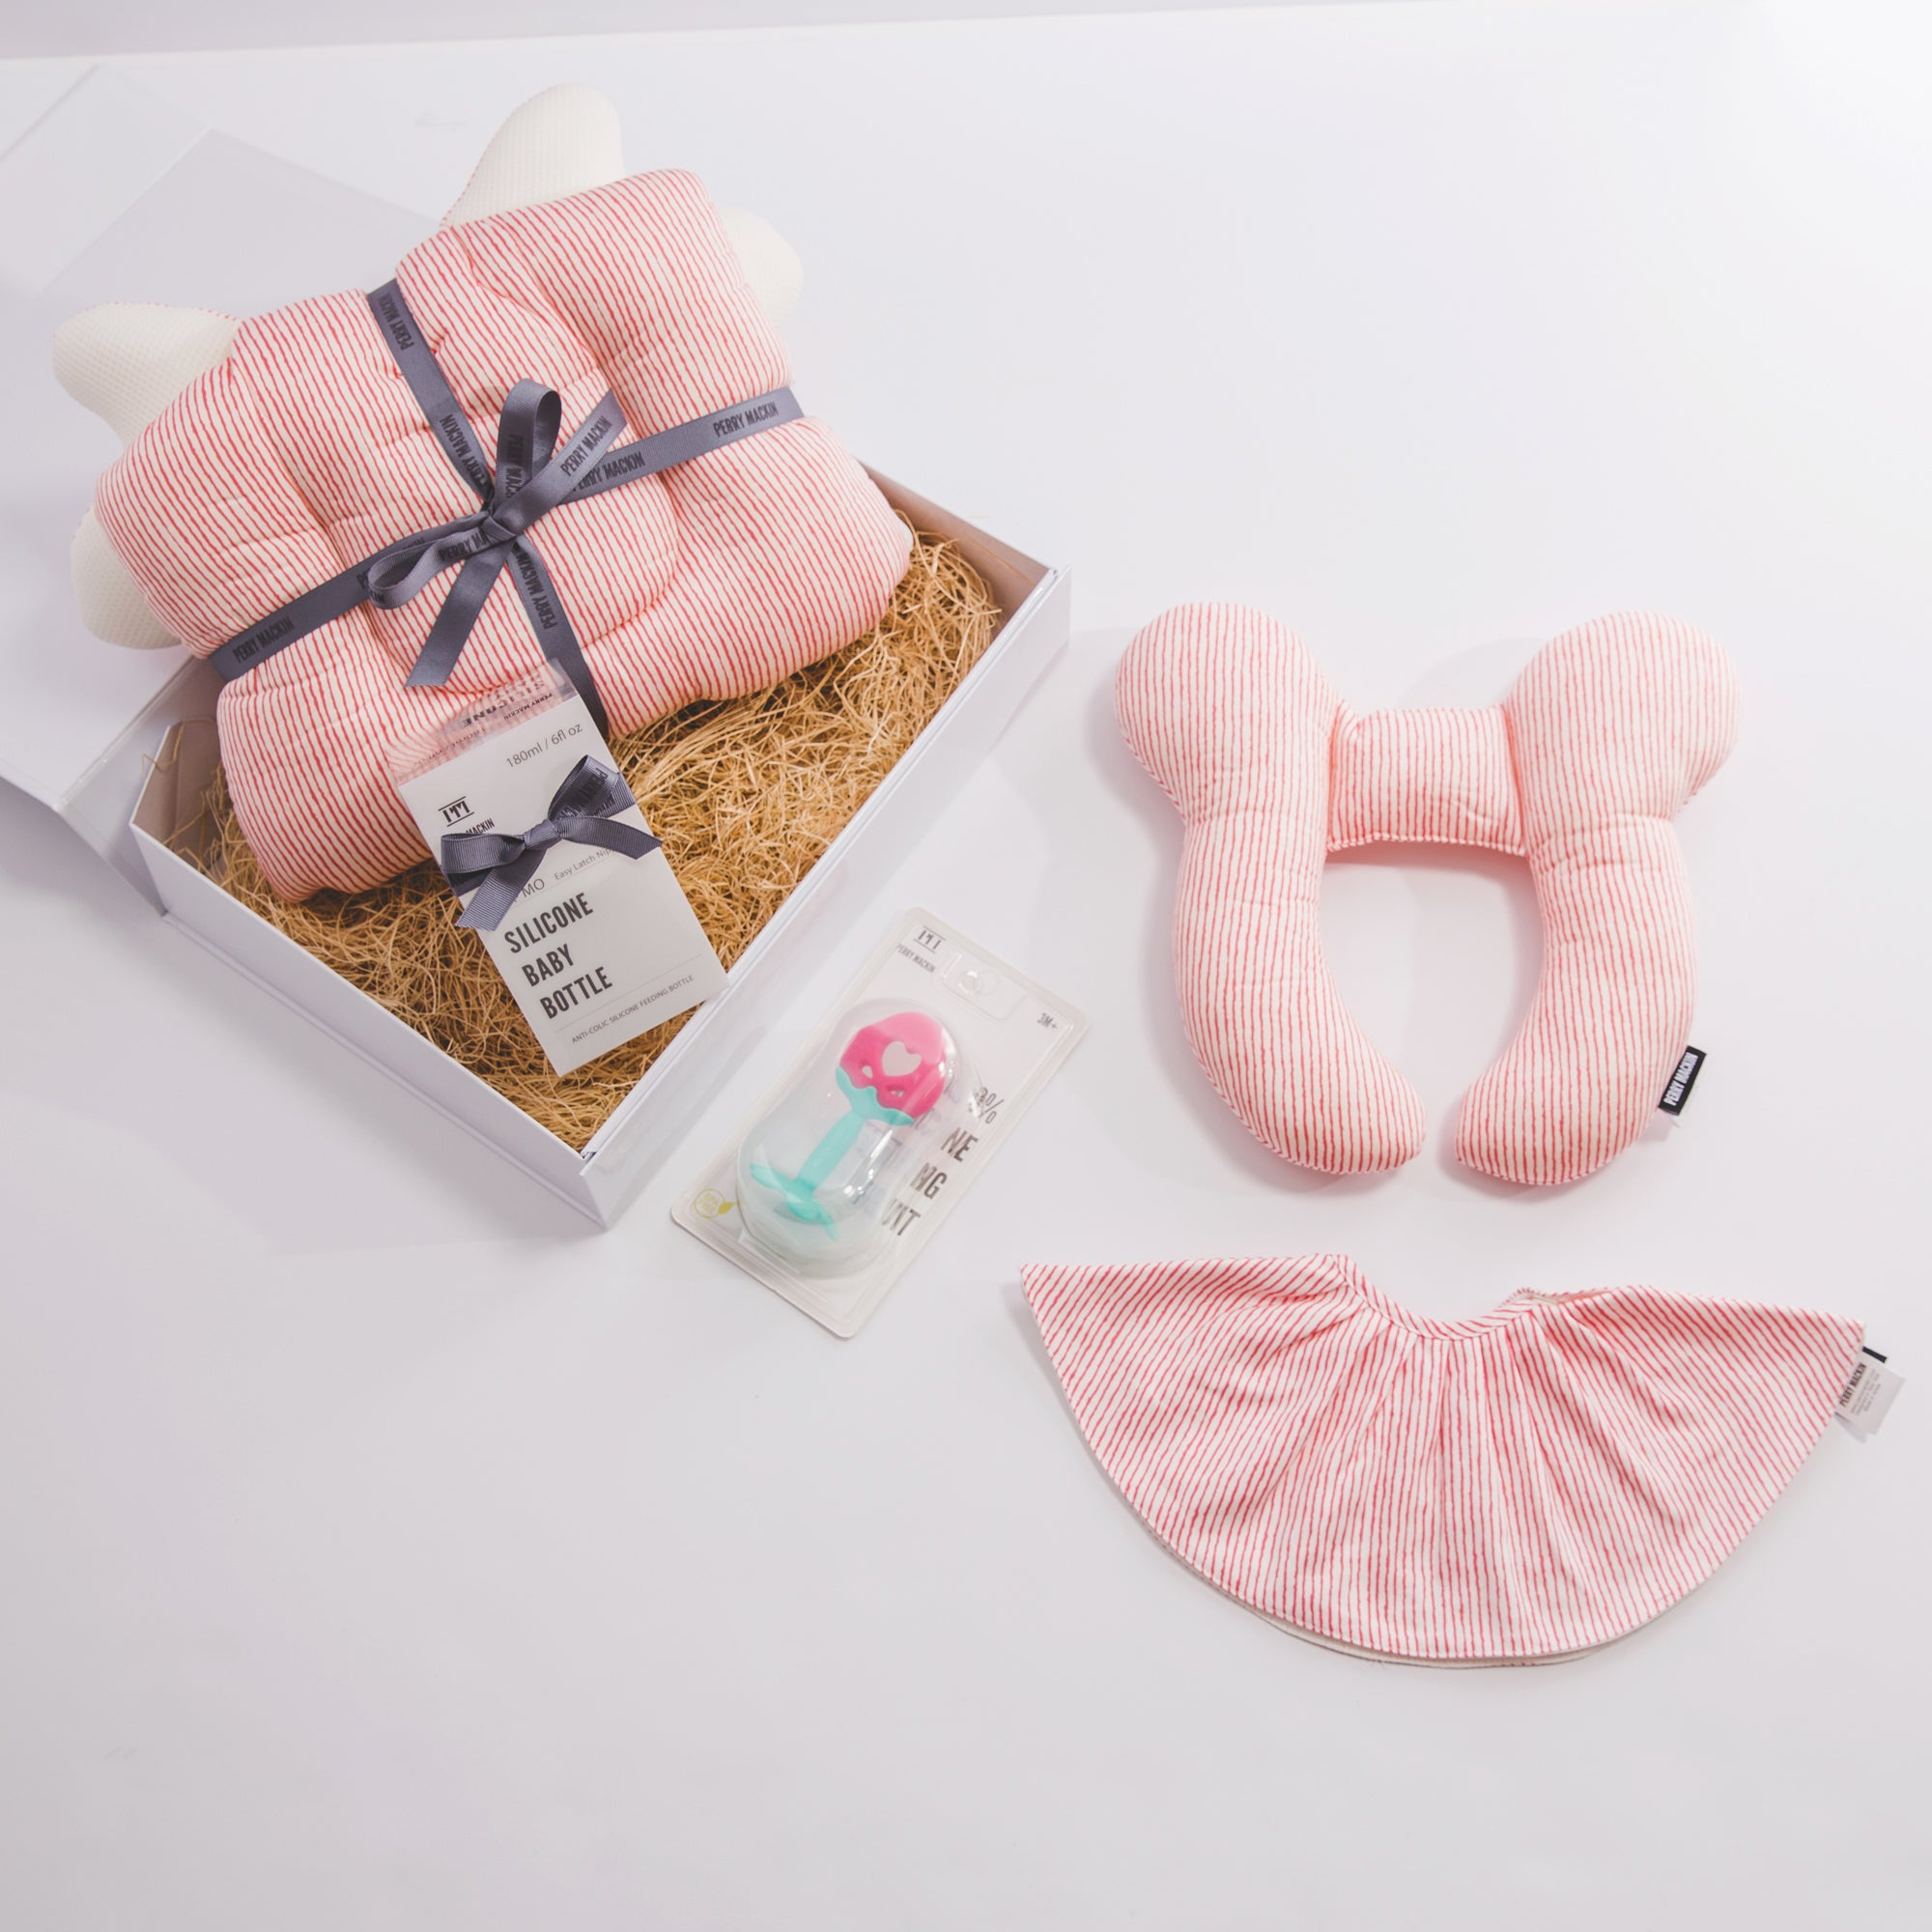 baby neck pillow, bib, teether gift set 2